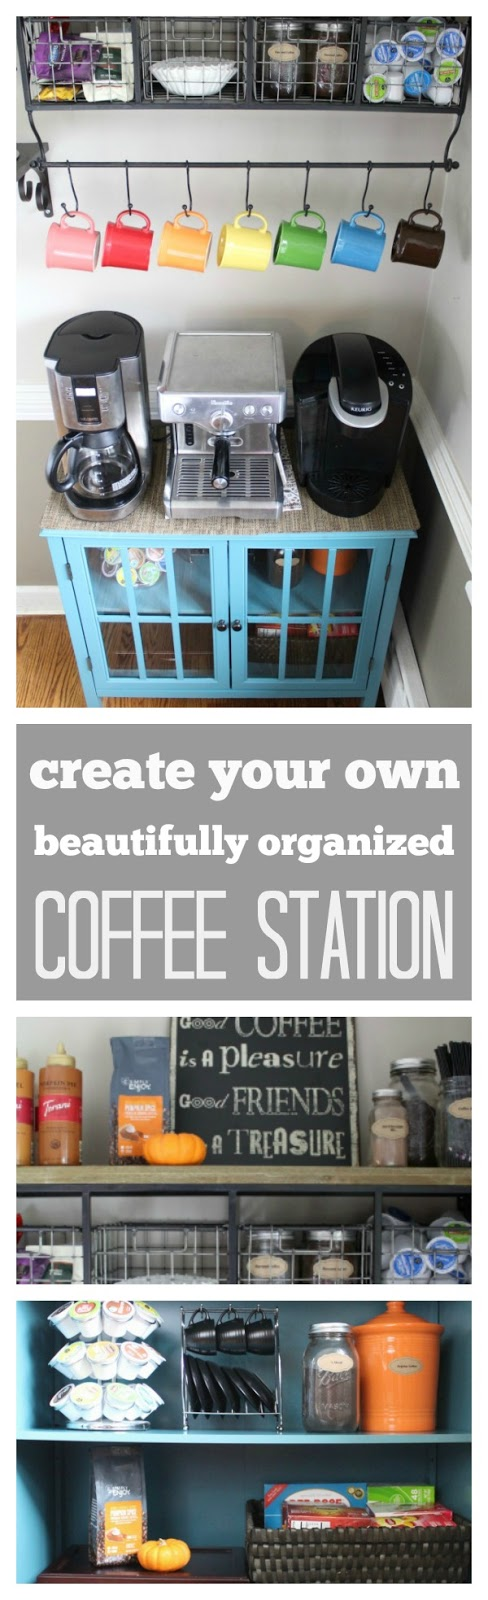 Create your own beautifully organized coffee station: 5 easy steps. Follow this guide to organize all of your coffee, tea and hot drinks into one organized coffee bar that will make guests feel welcomed in your home.